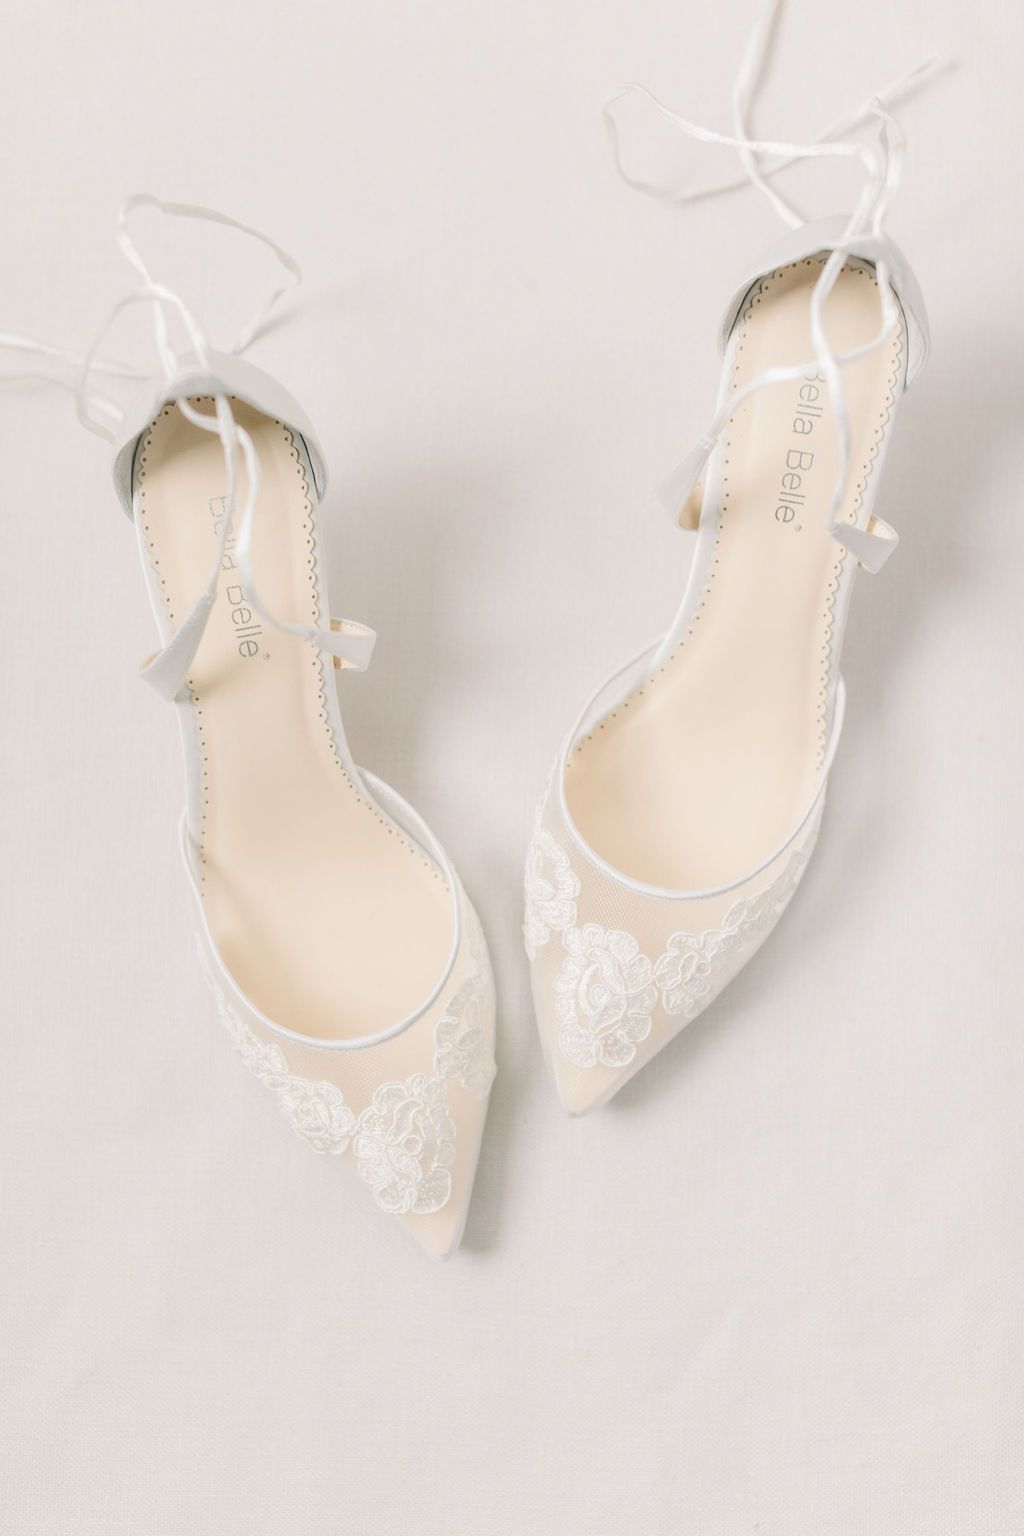 Ivory Lace Low Heel Wedding Shoes In 2020 Wedding Shoes Heels Wedding Shoes Low Heel Wedding Shoes Lace